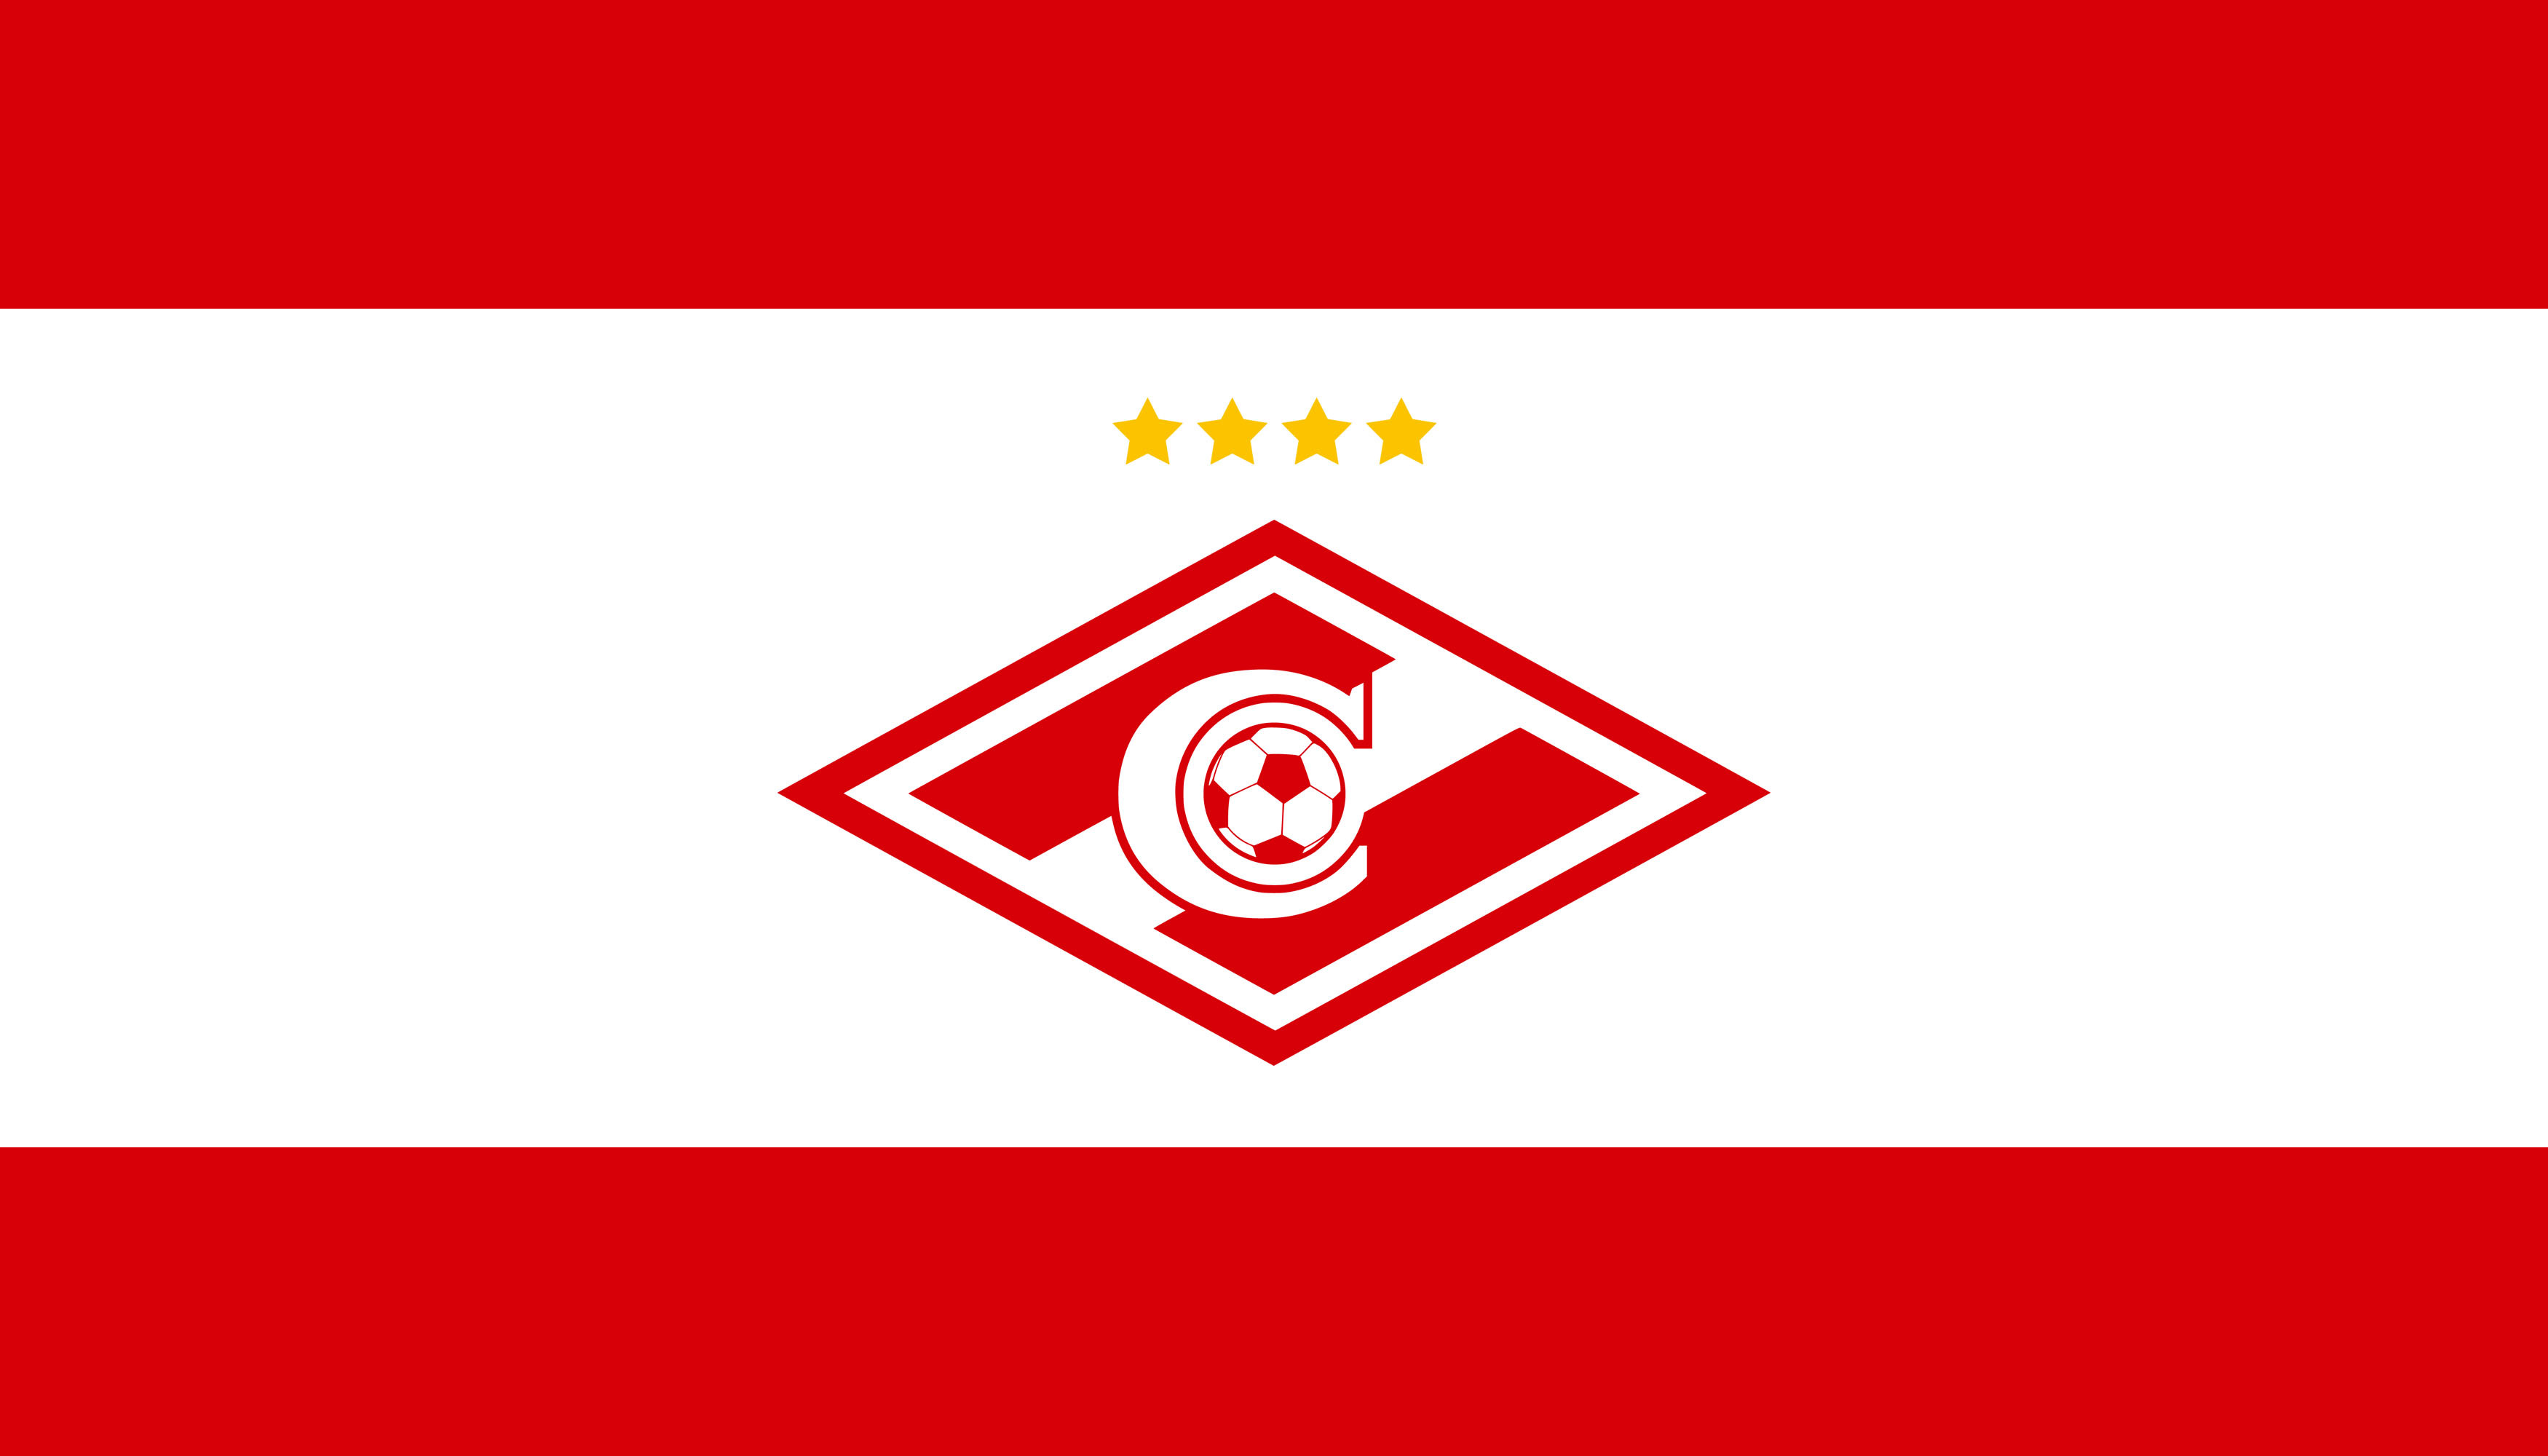 FC Spartak Moscow HD Wallpaper Background Image 3500x2000 ID 3500x2000